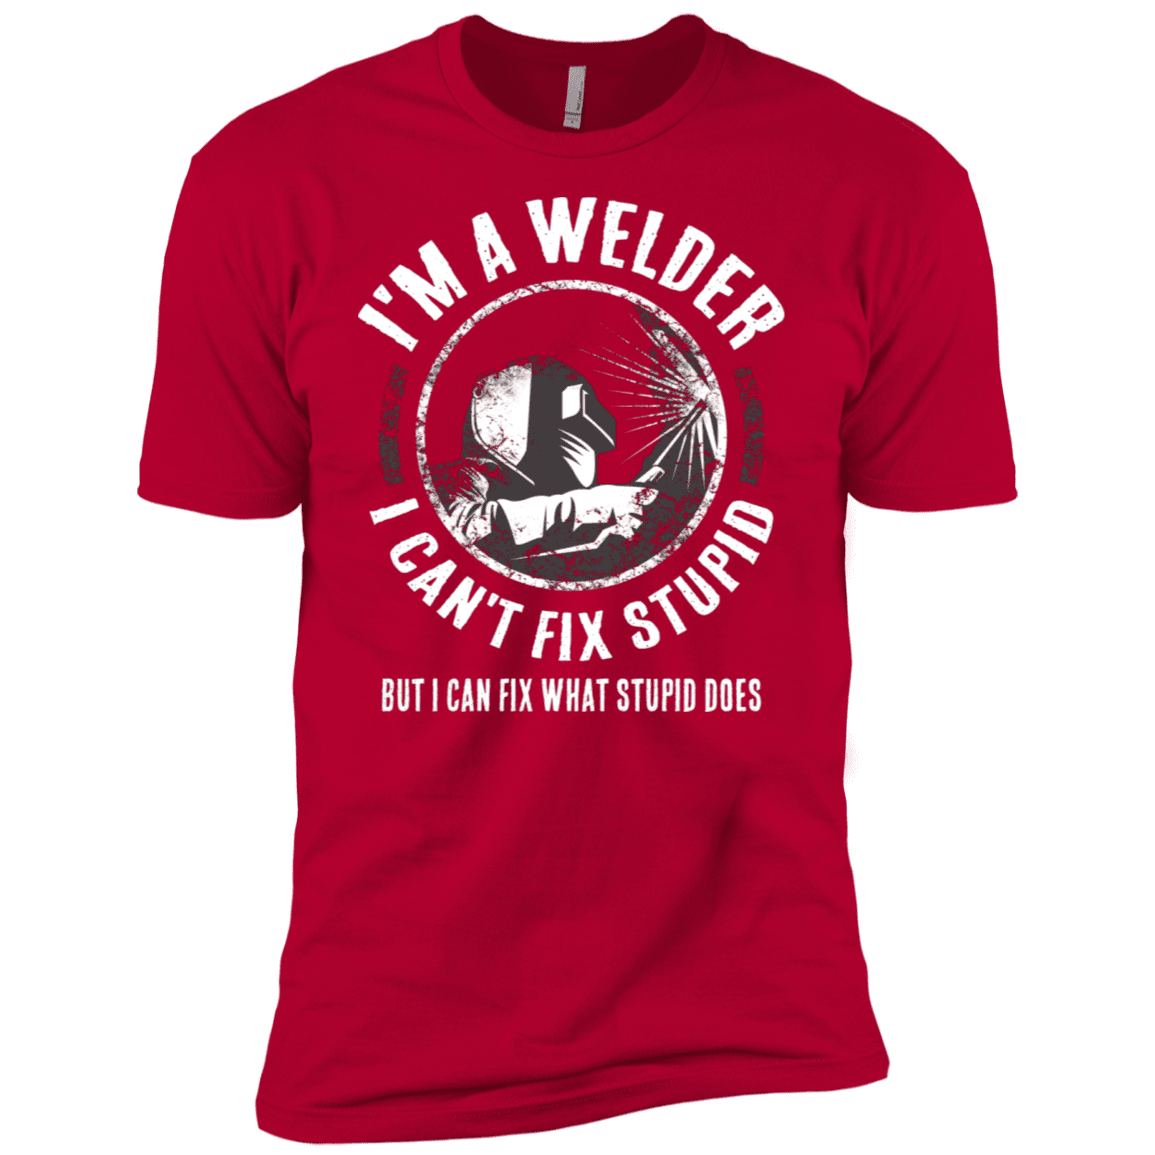 Stupid T Shirts >> Welding T Shirt Welder T Shirt Gift I M A Welder I Can T Fix Stupid T Shirt Funny Welding Gift On Father S Day Father S Birthday